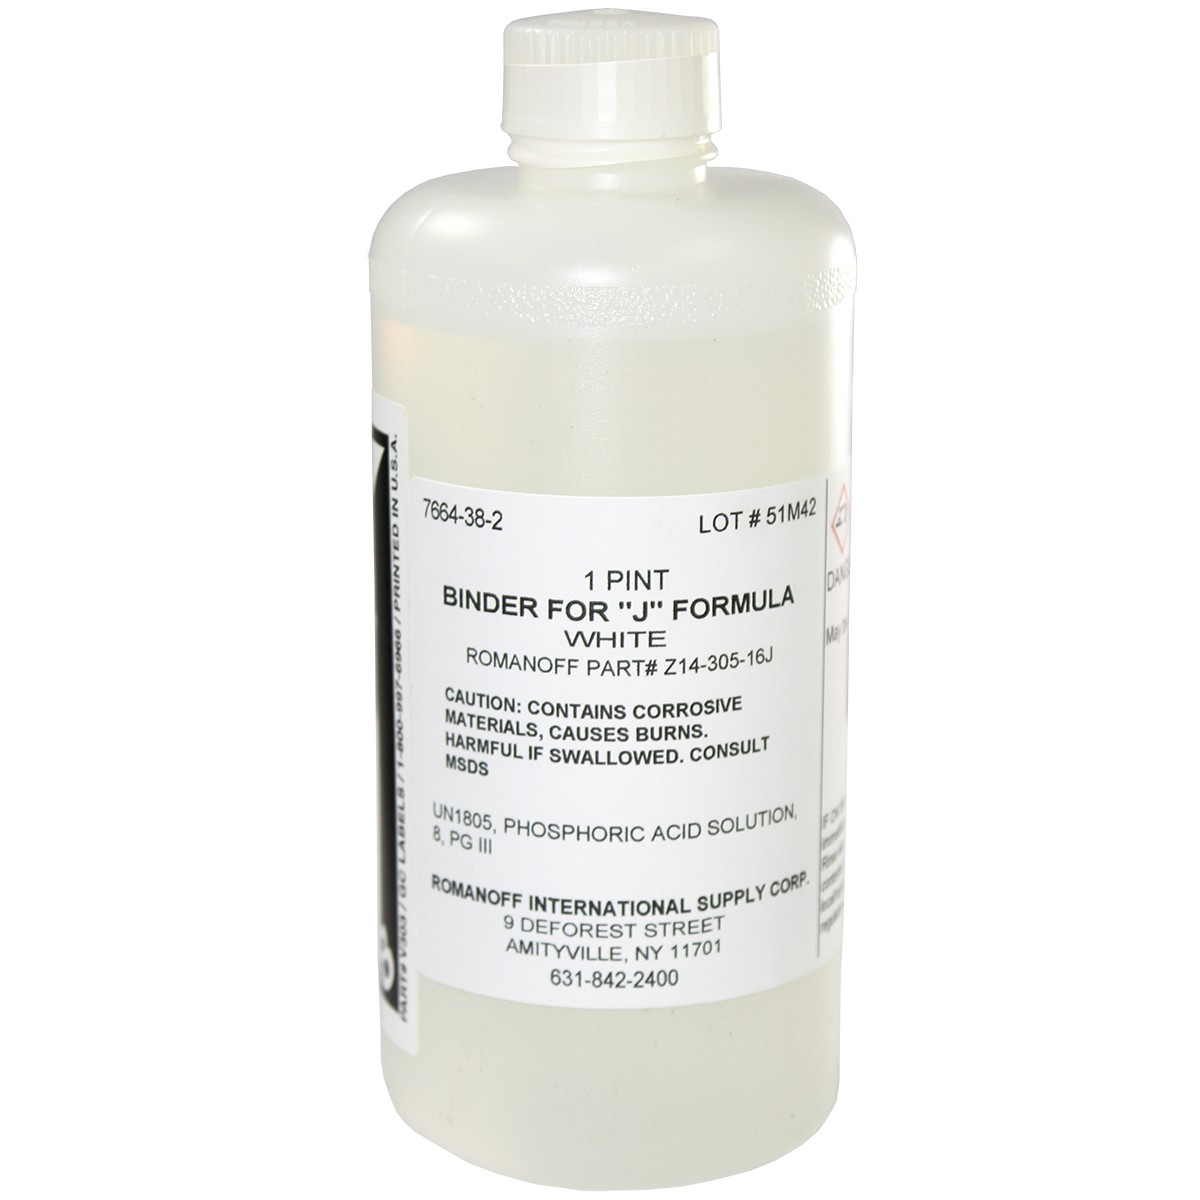 J-Formula Original White Label Binder Only - 16oz